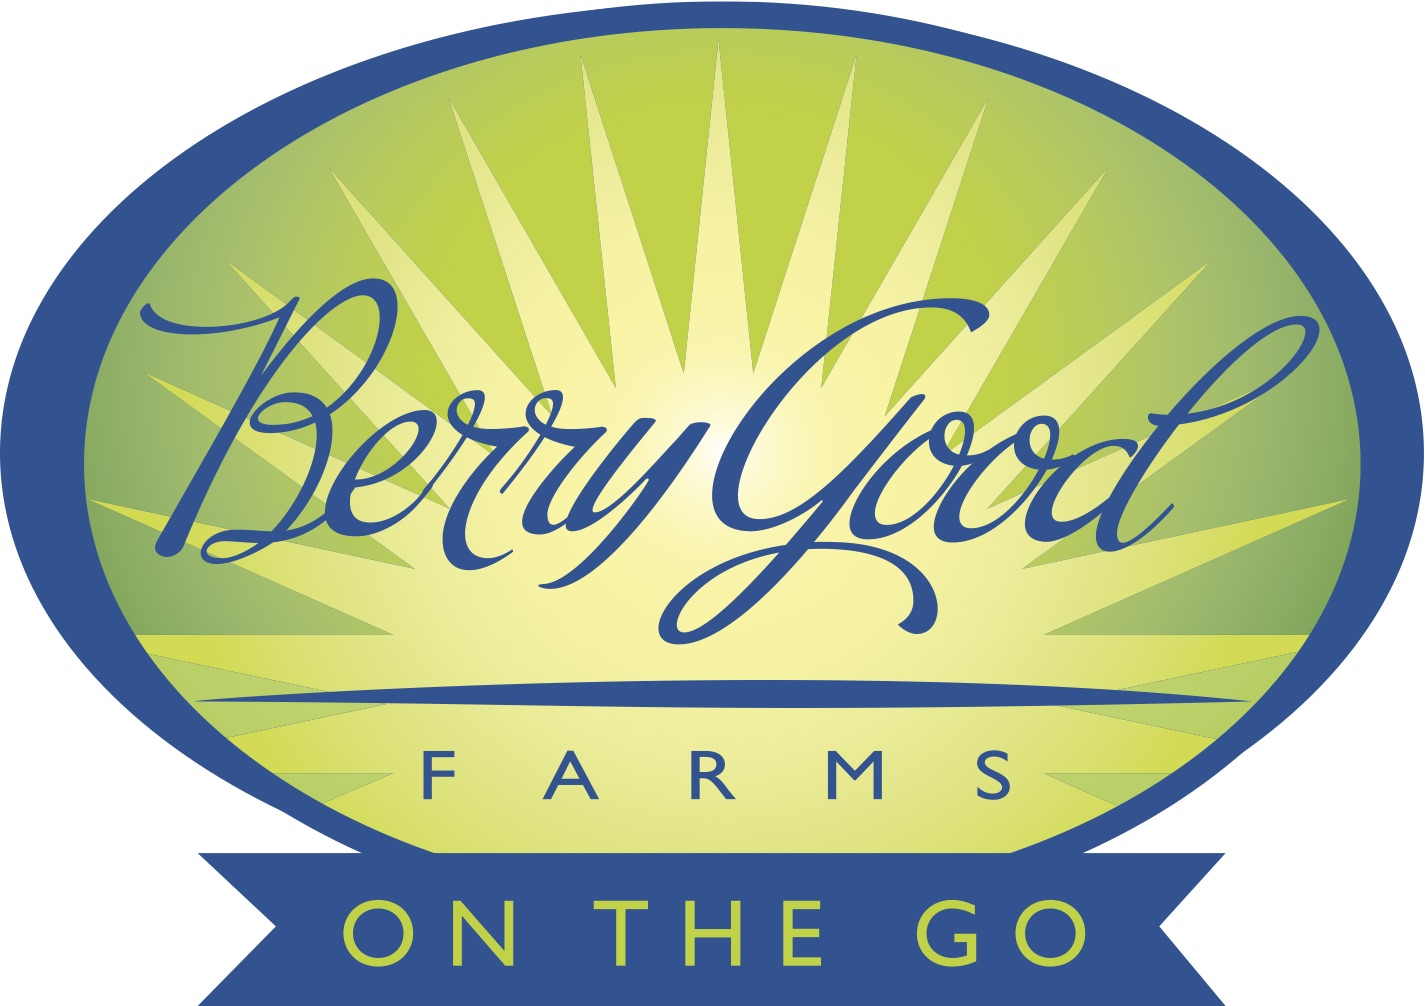 Berry Good Farms on the Go logo